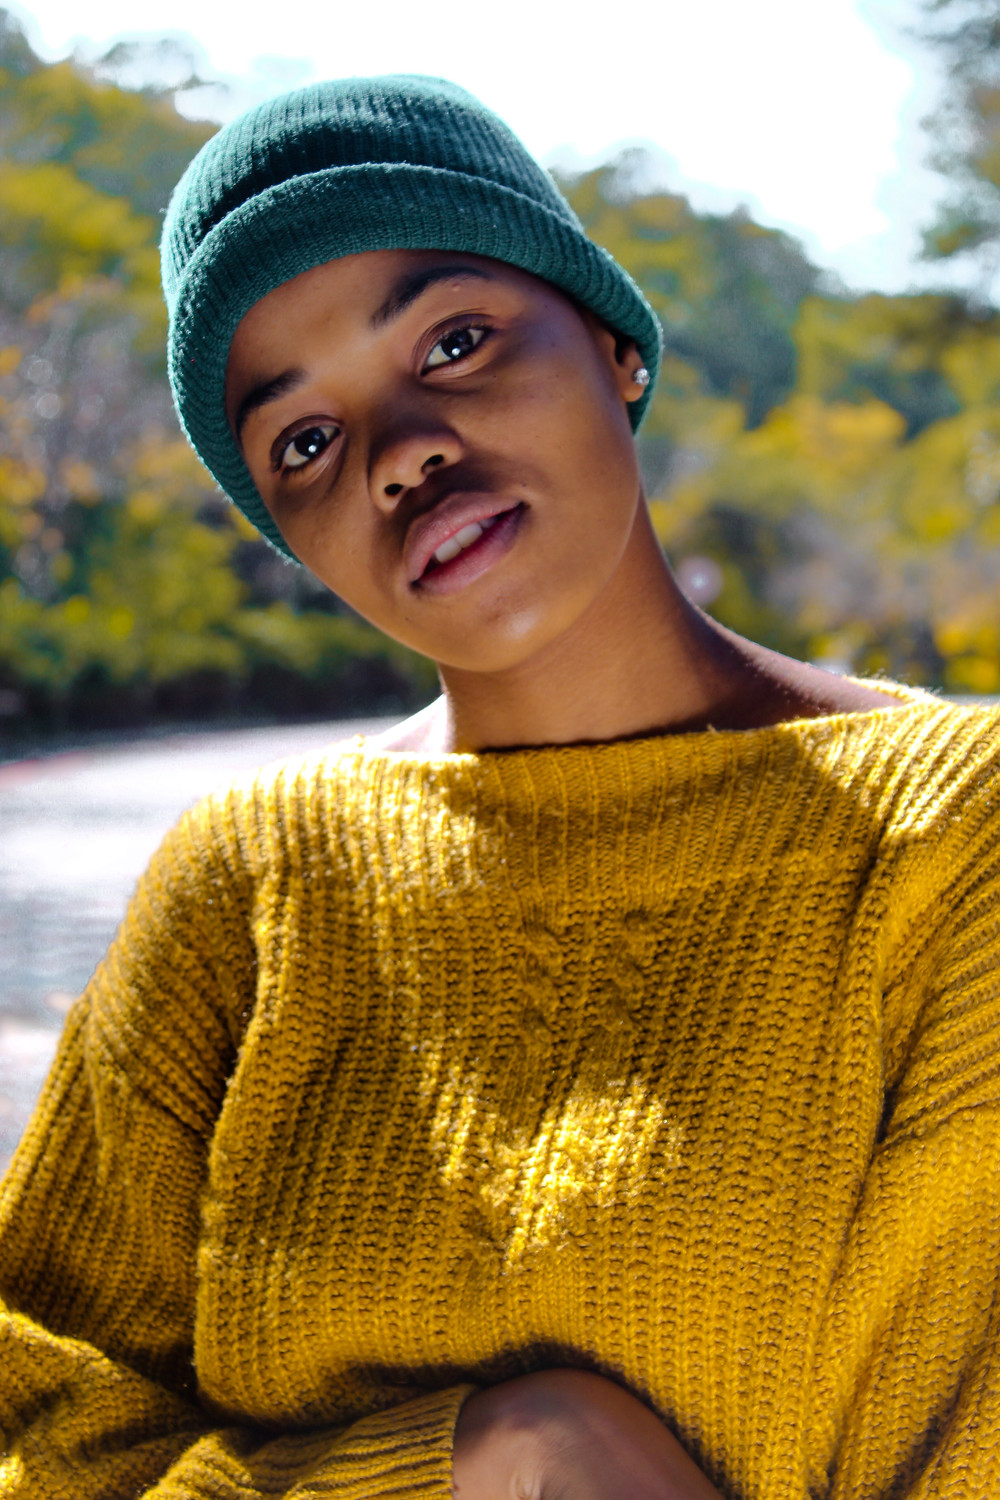 hipster girl wearing a cool beanie and mustard jumper